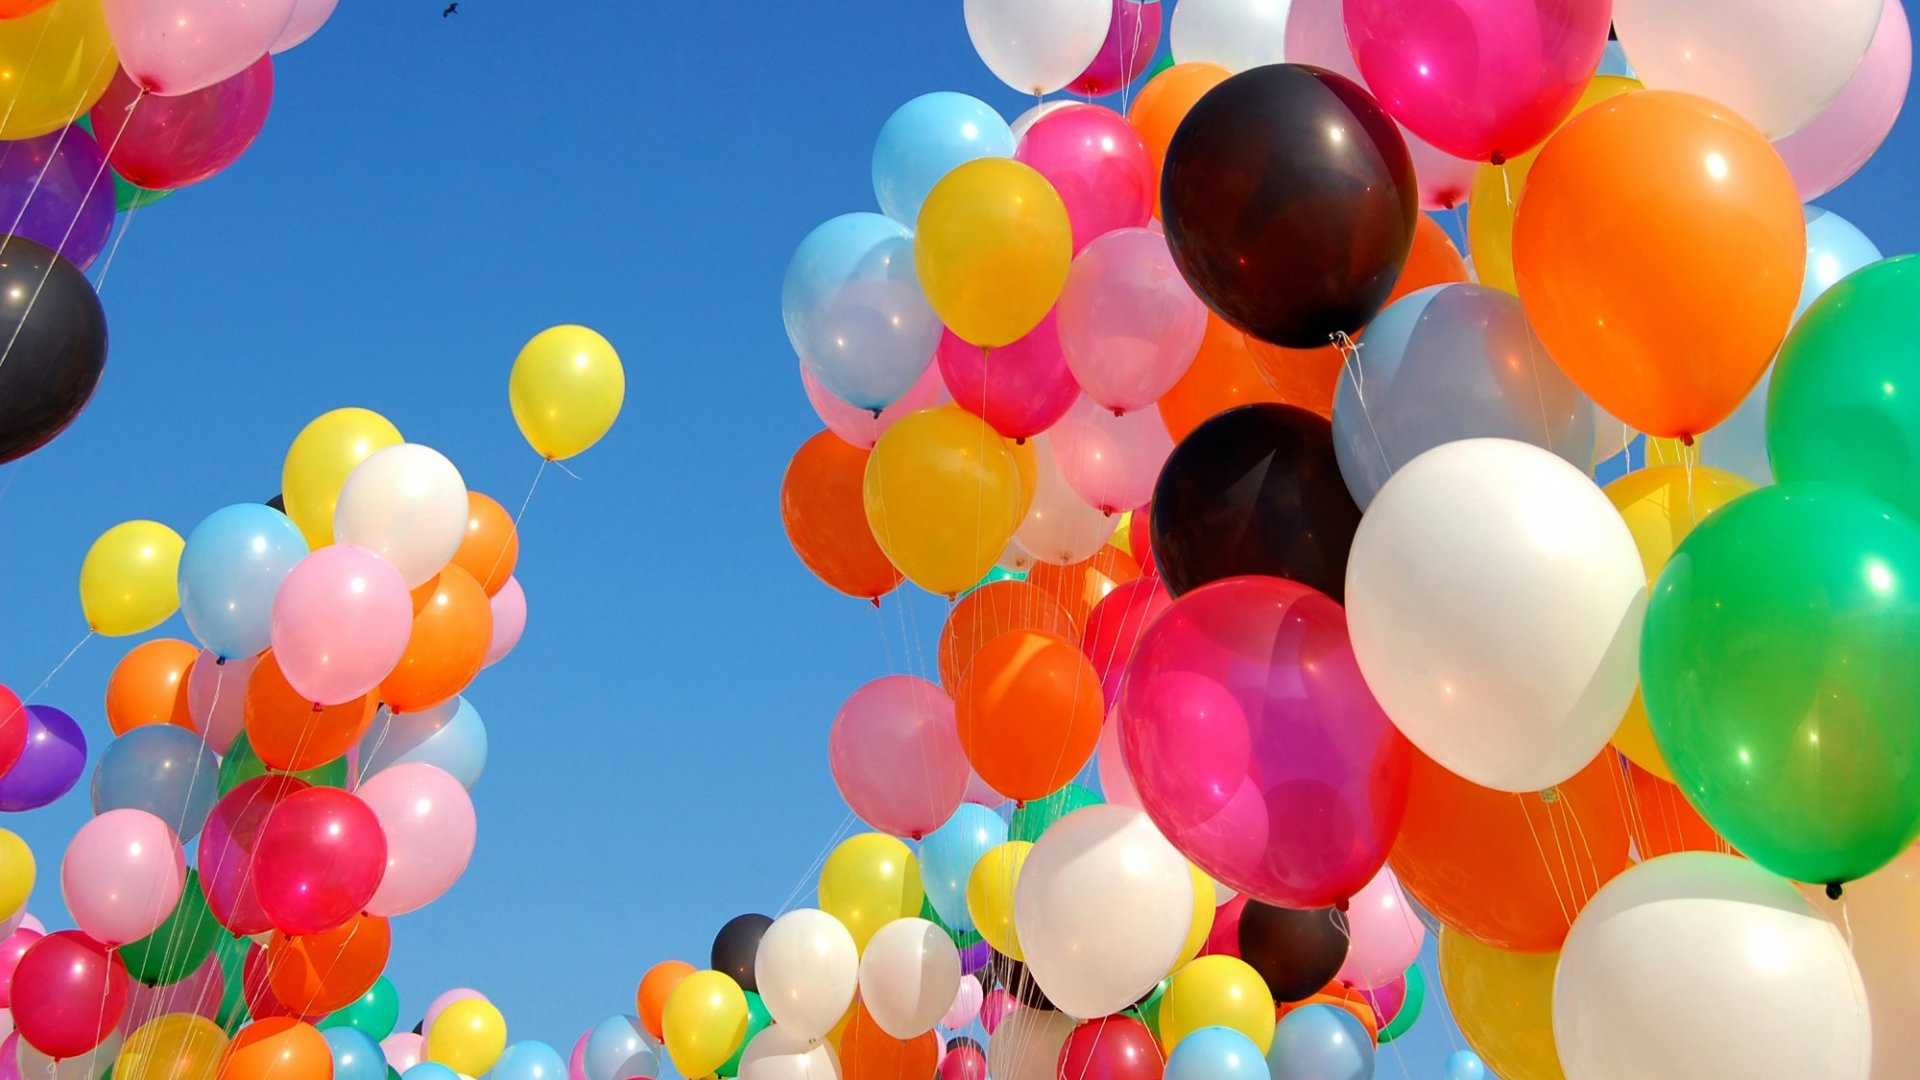 57 Easy Ways to Be Happier and More Successful